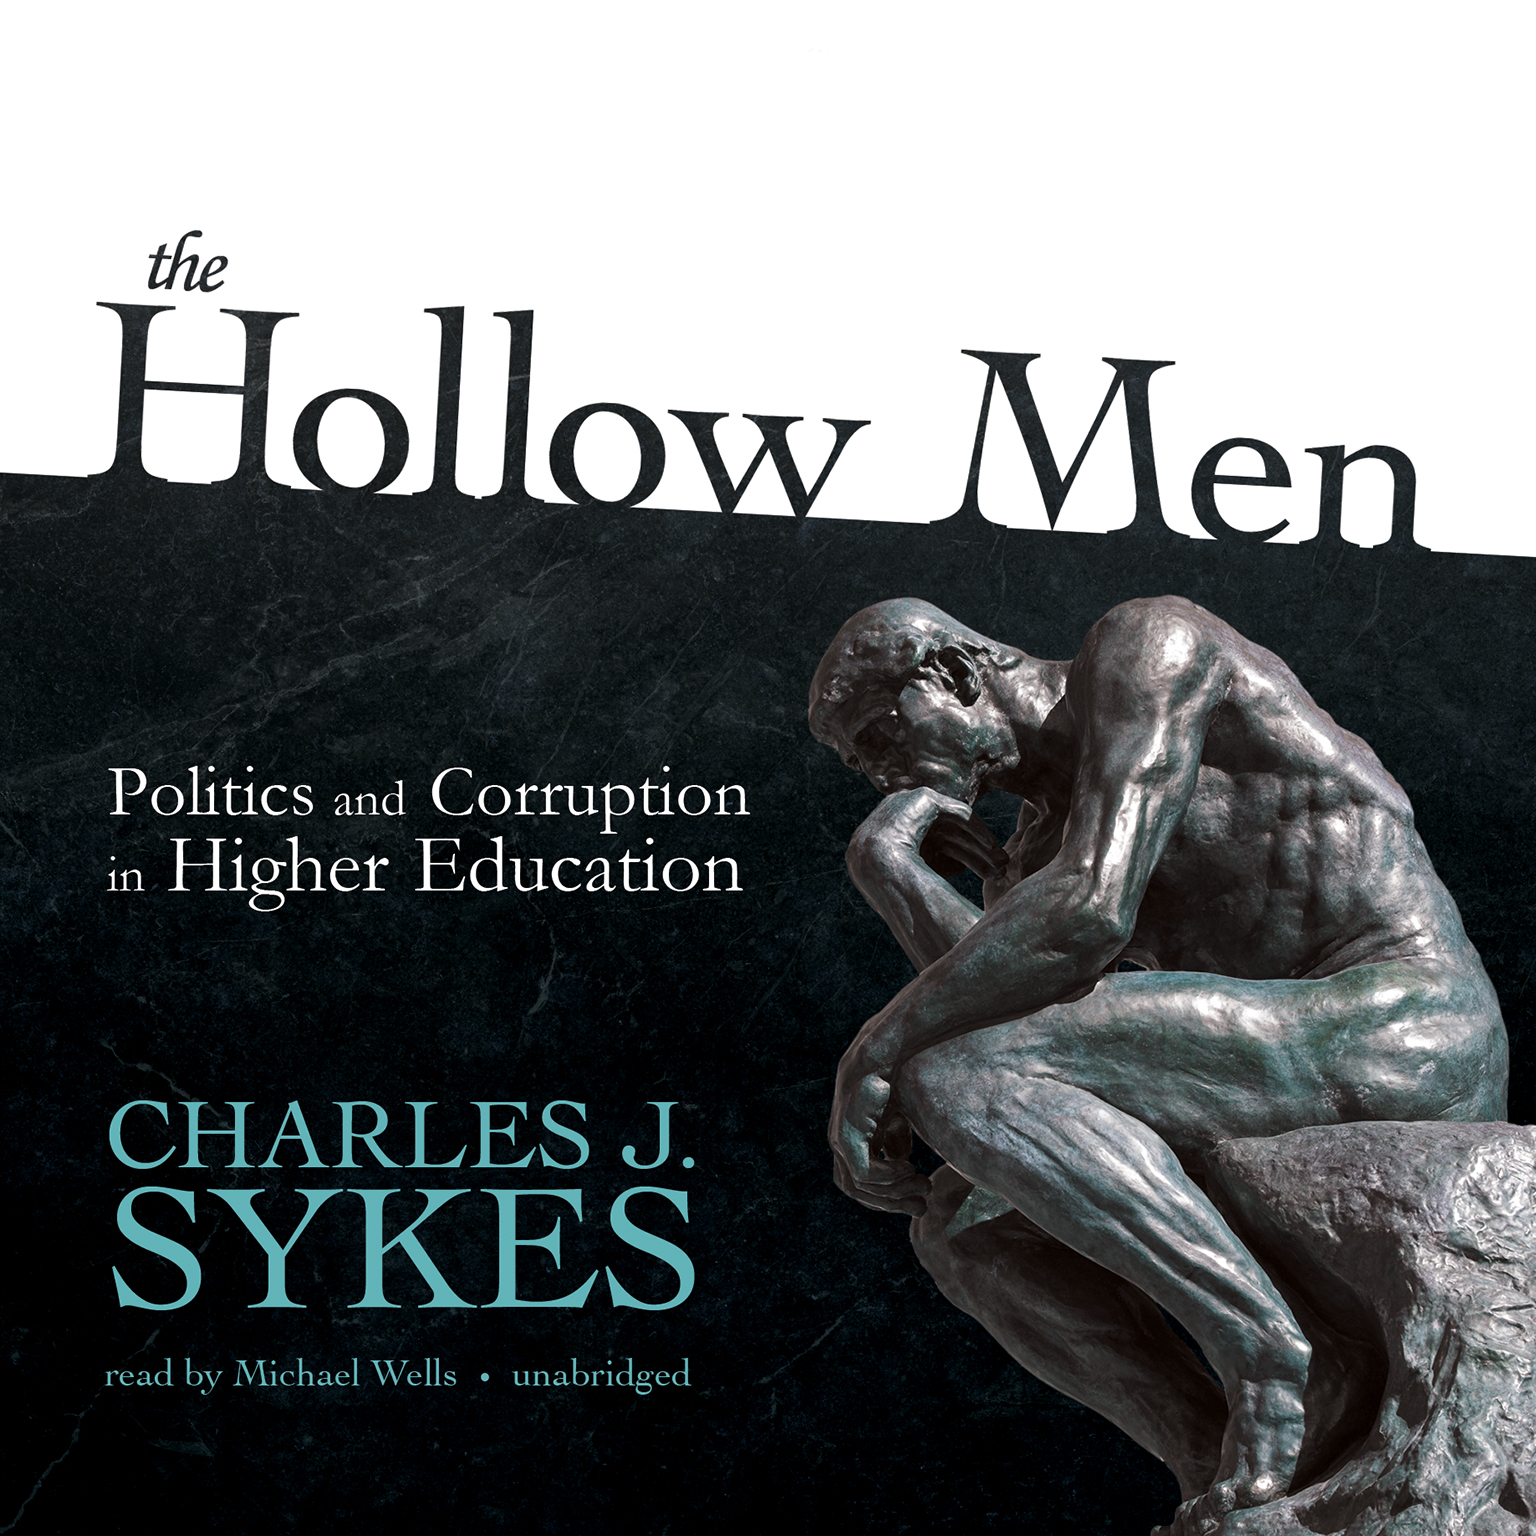 Printable The Hollow Men: Politics and Corruption in Higher Education Audiobook Cover Art